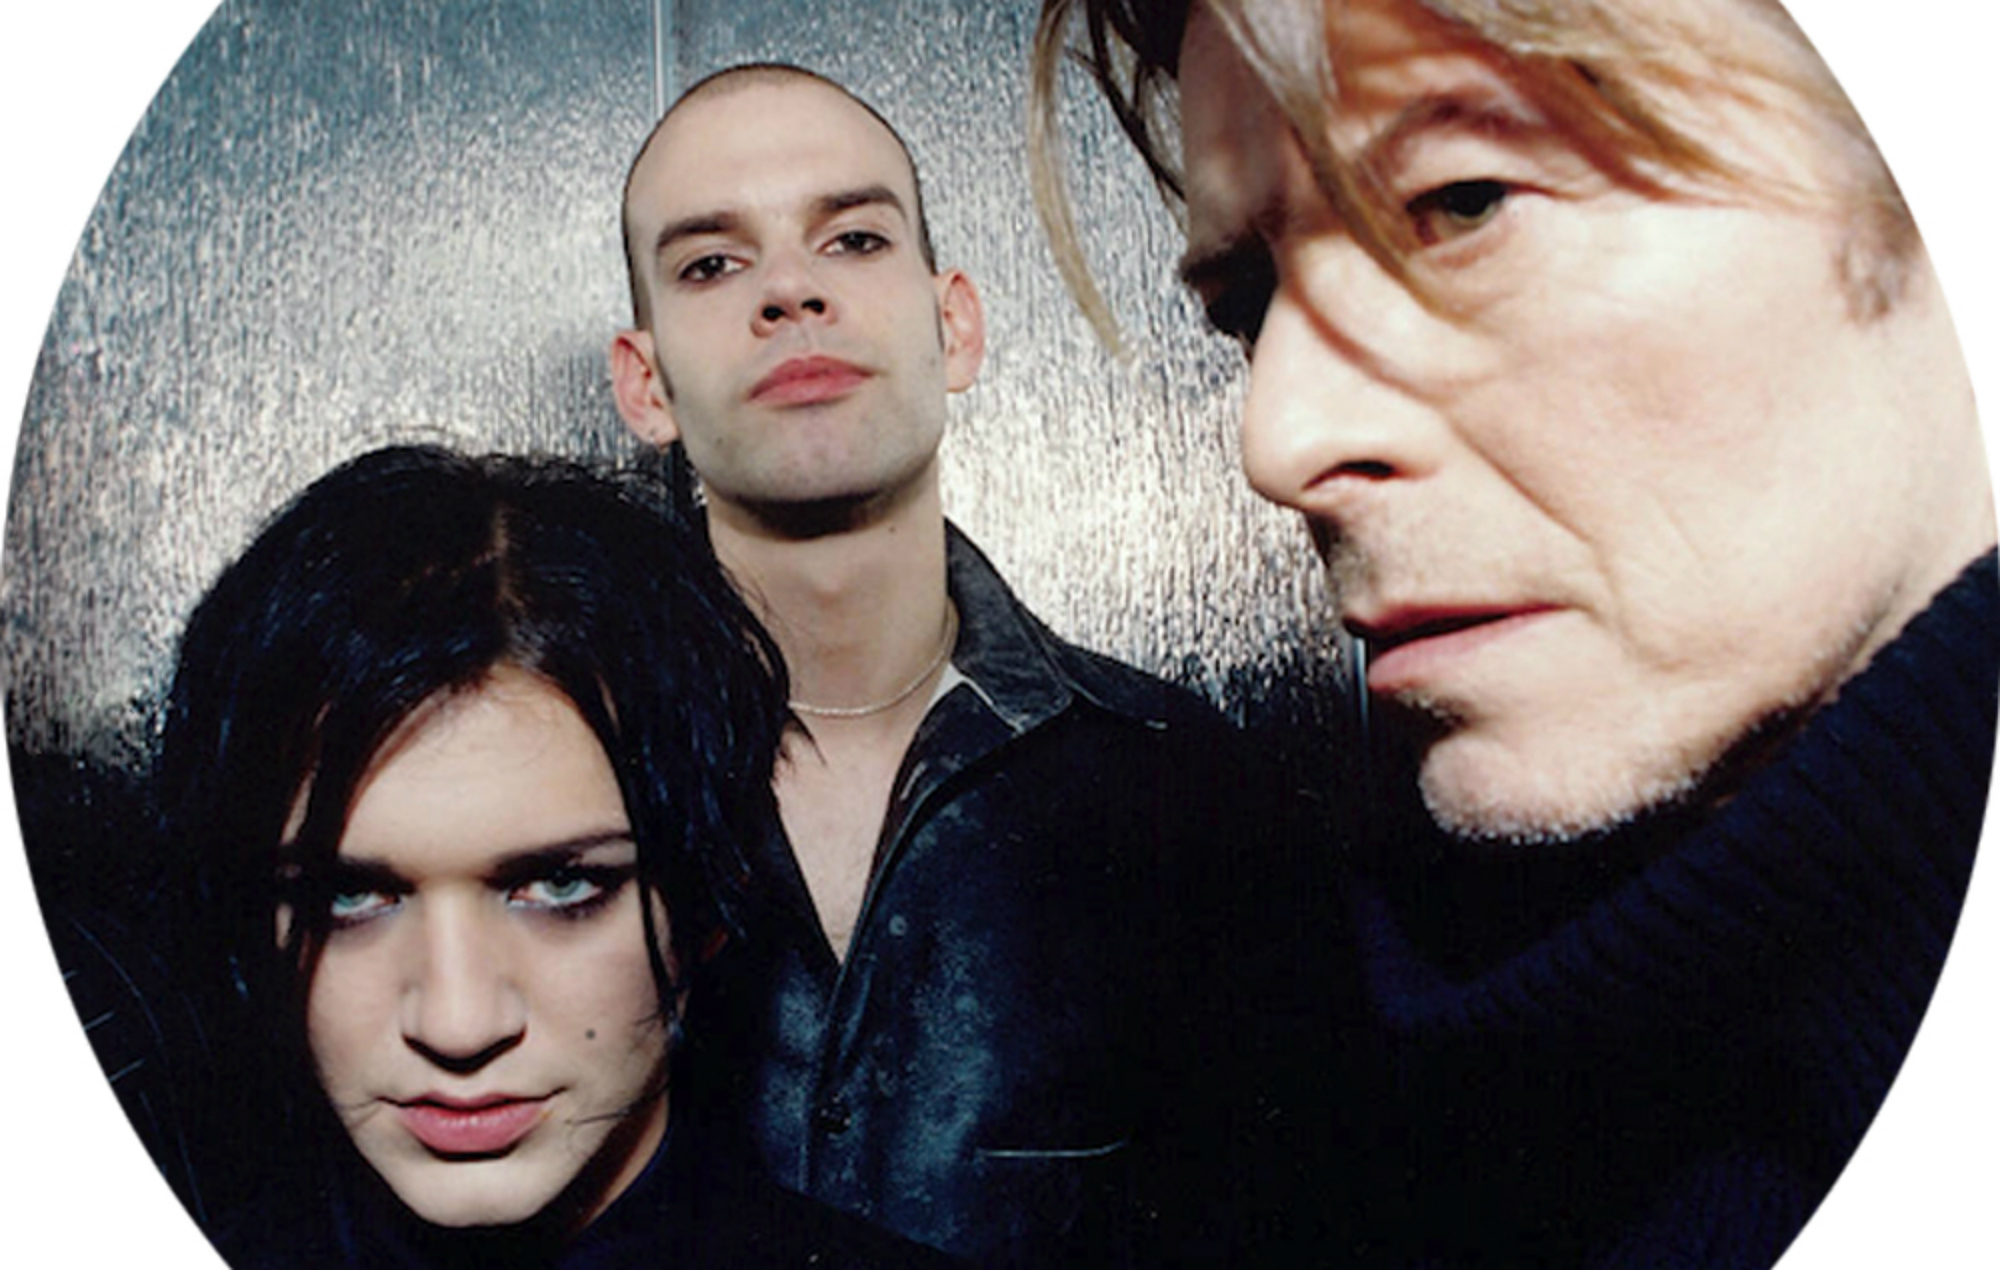 PLACEBO_BOWIE_2000